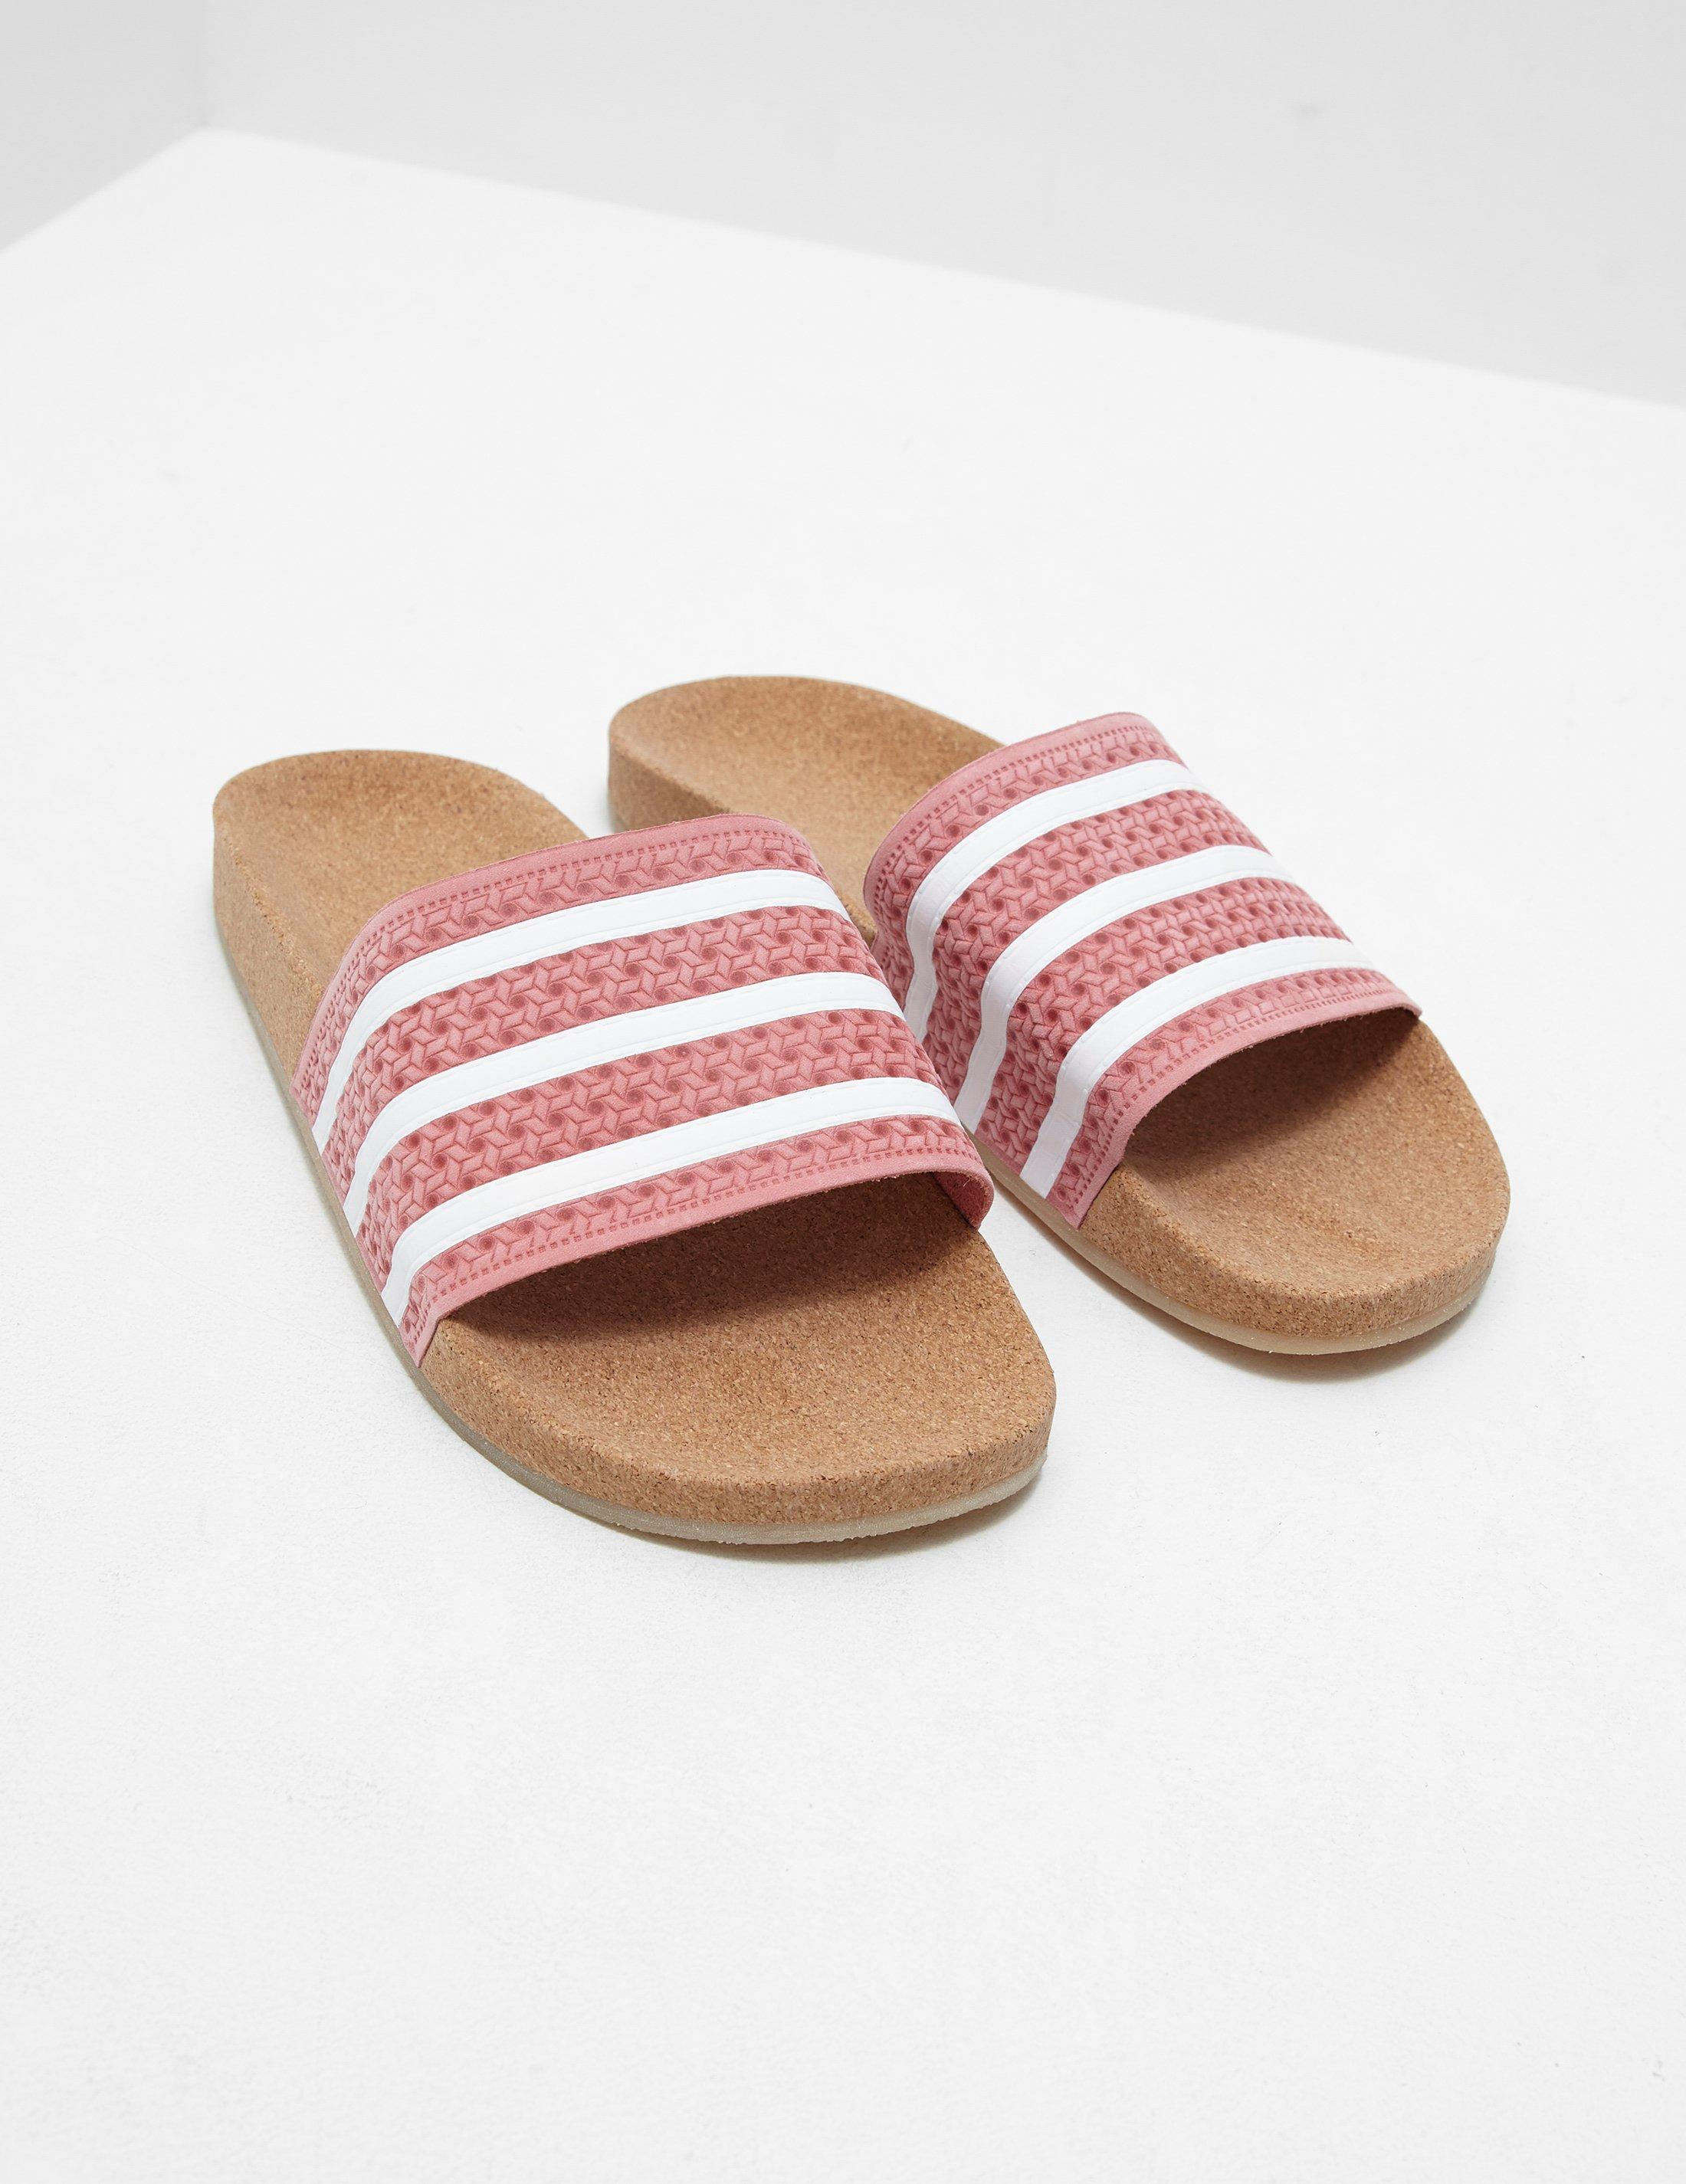 027cecfd4e86 adidas Originals Womens Adilette Cork Slides Pink in Pink - Lyst